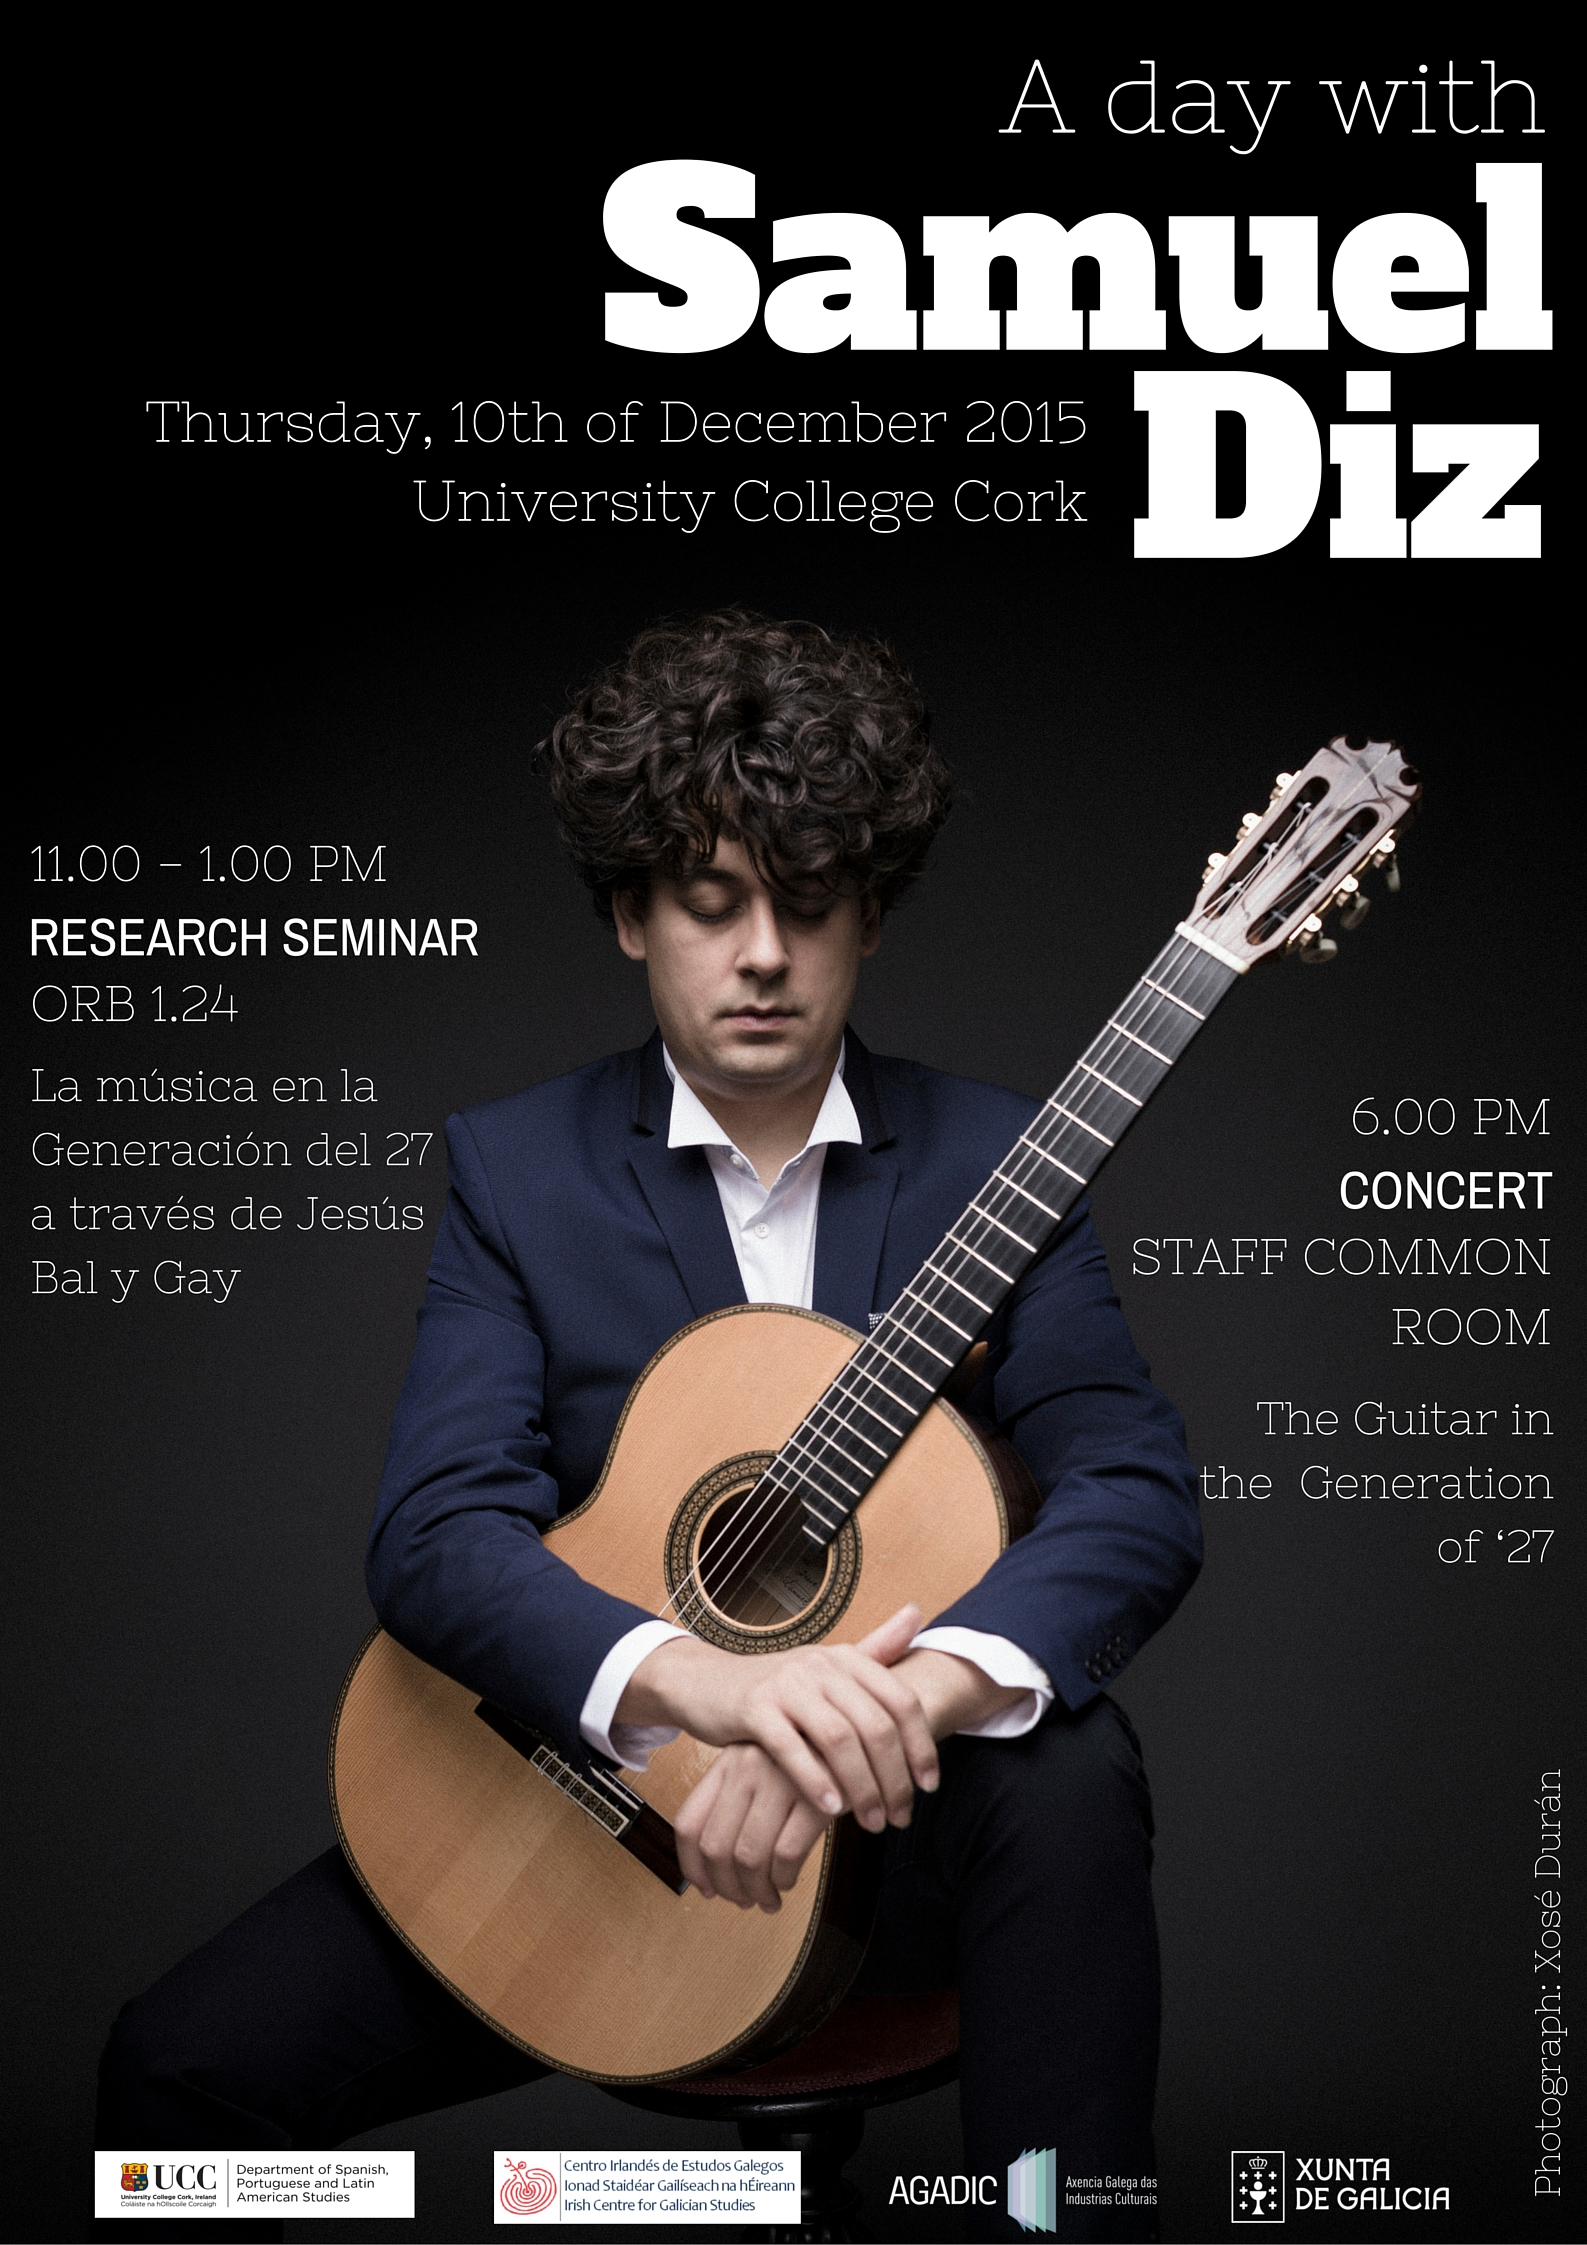 2015. December 10th. A Day with Galician Guitarist Samuel Diz